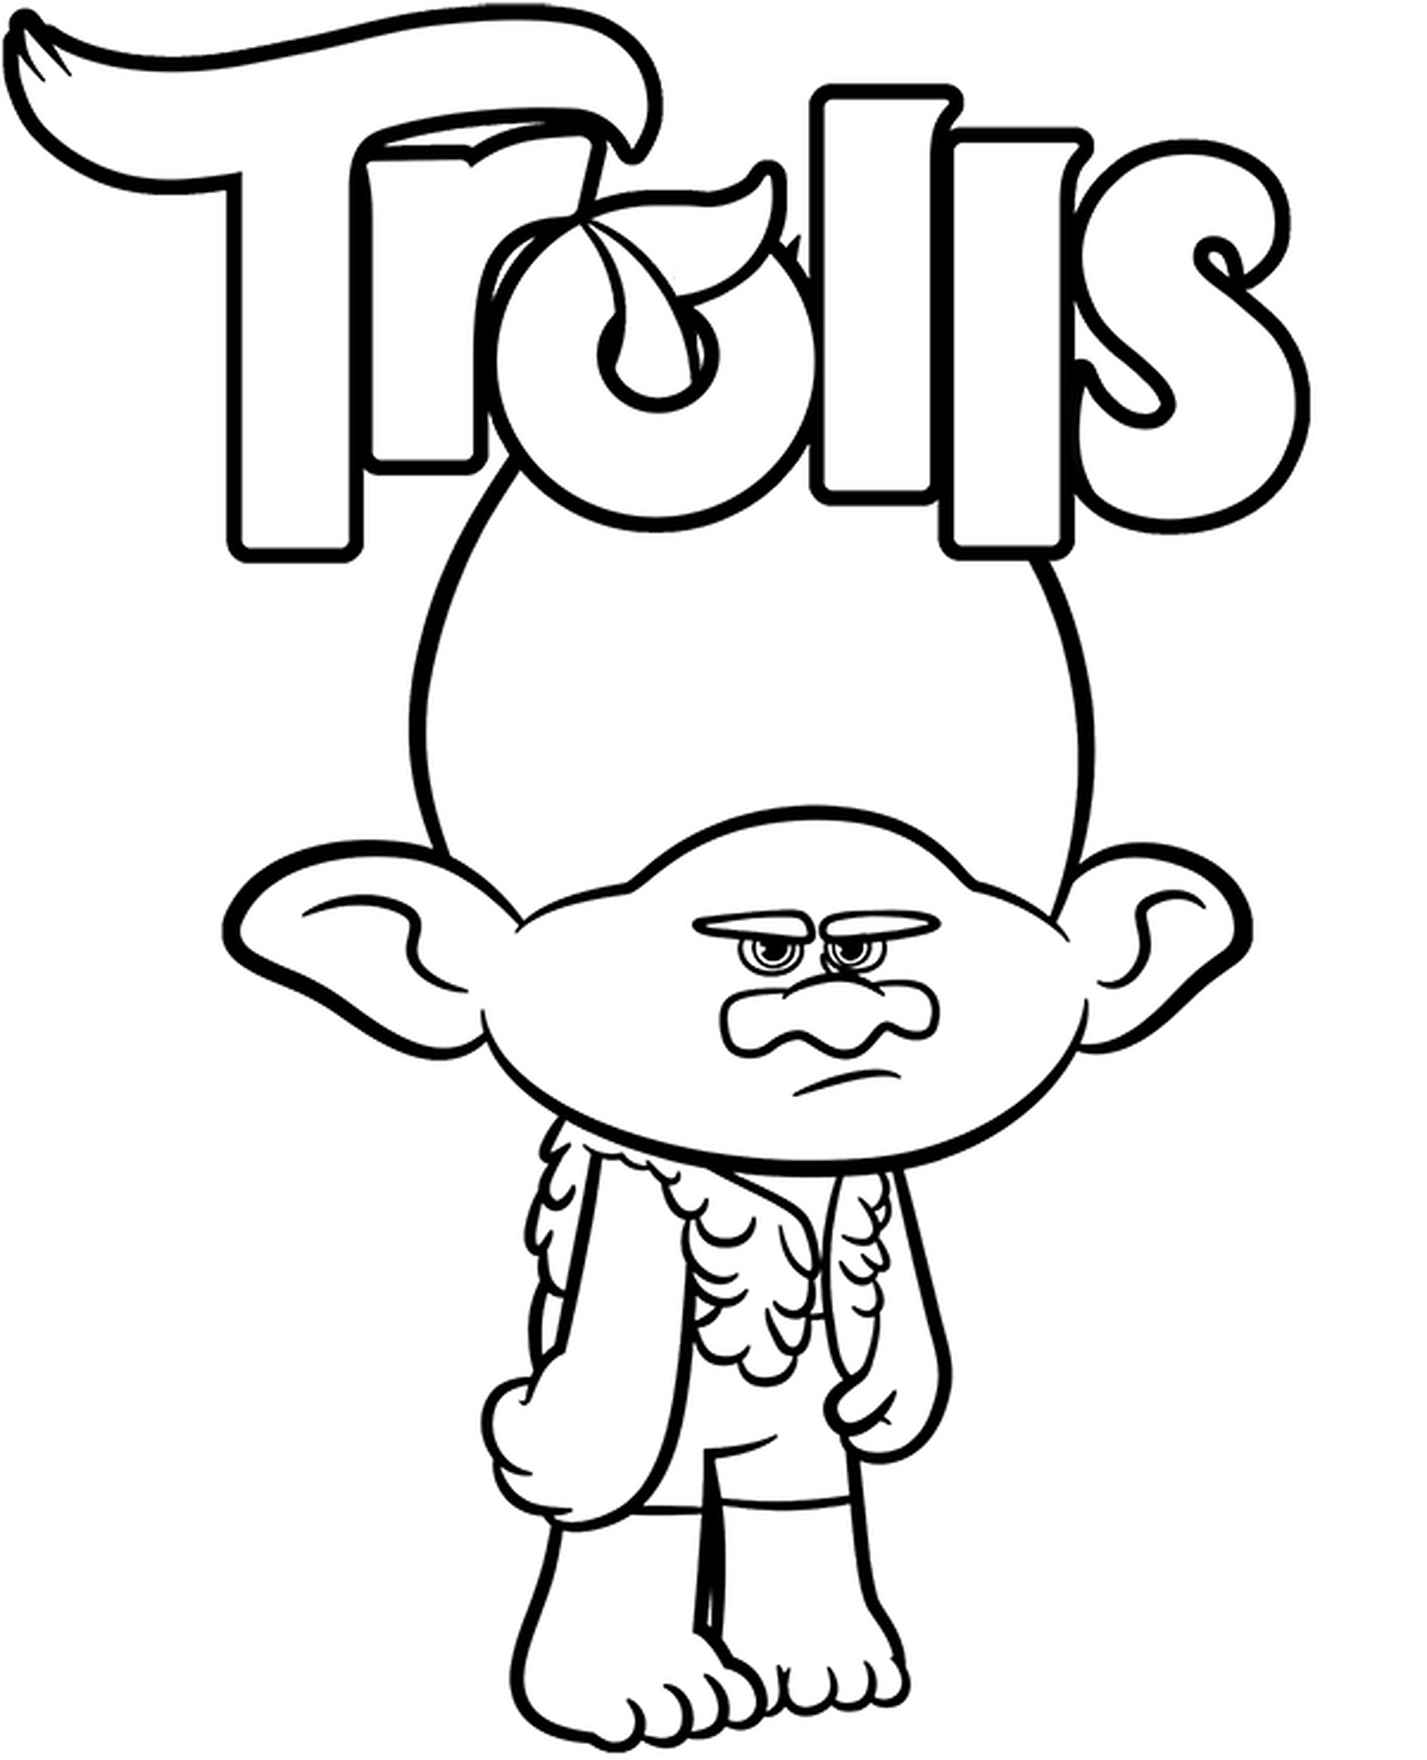 Funny Trolls Coloring Page